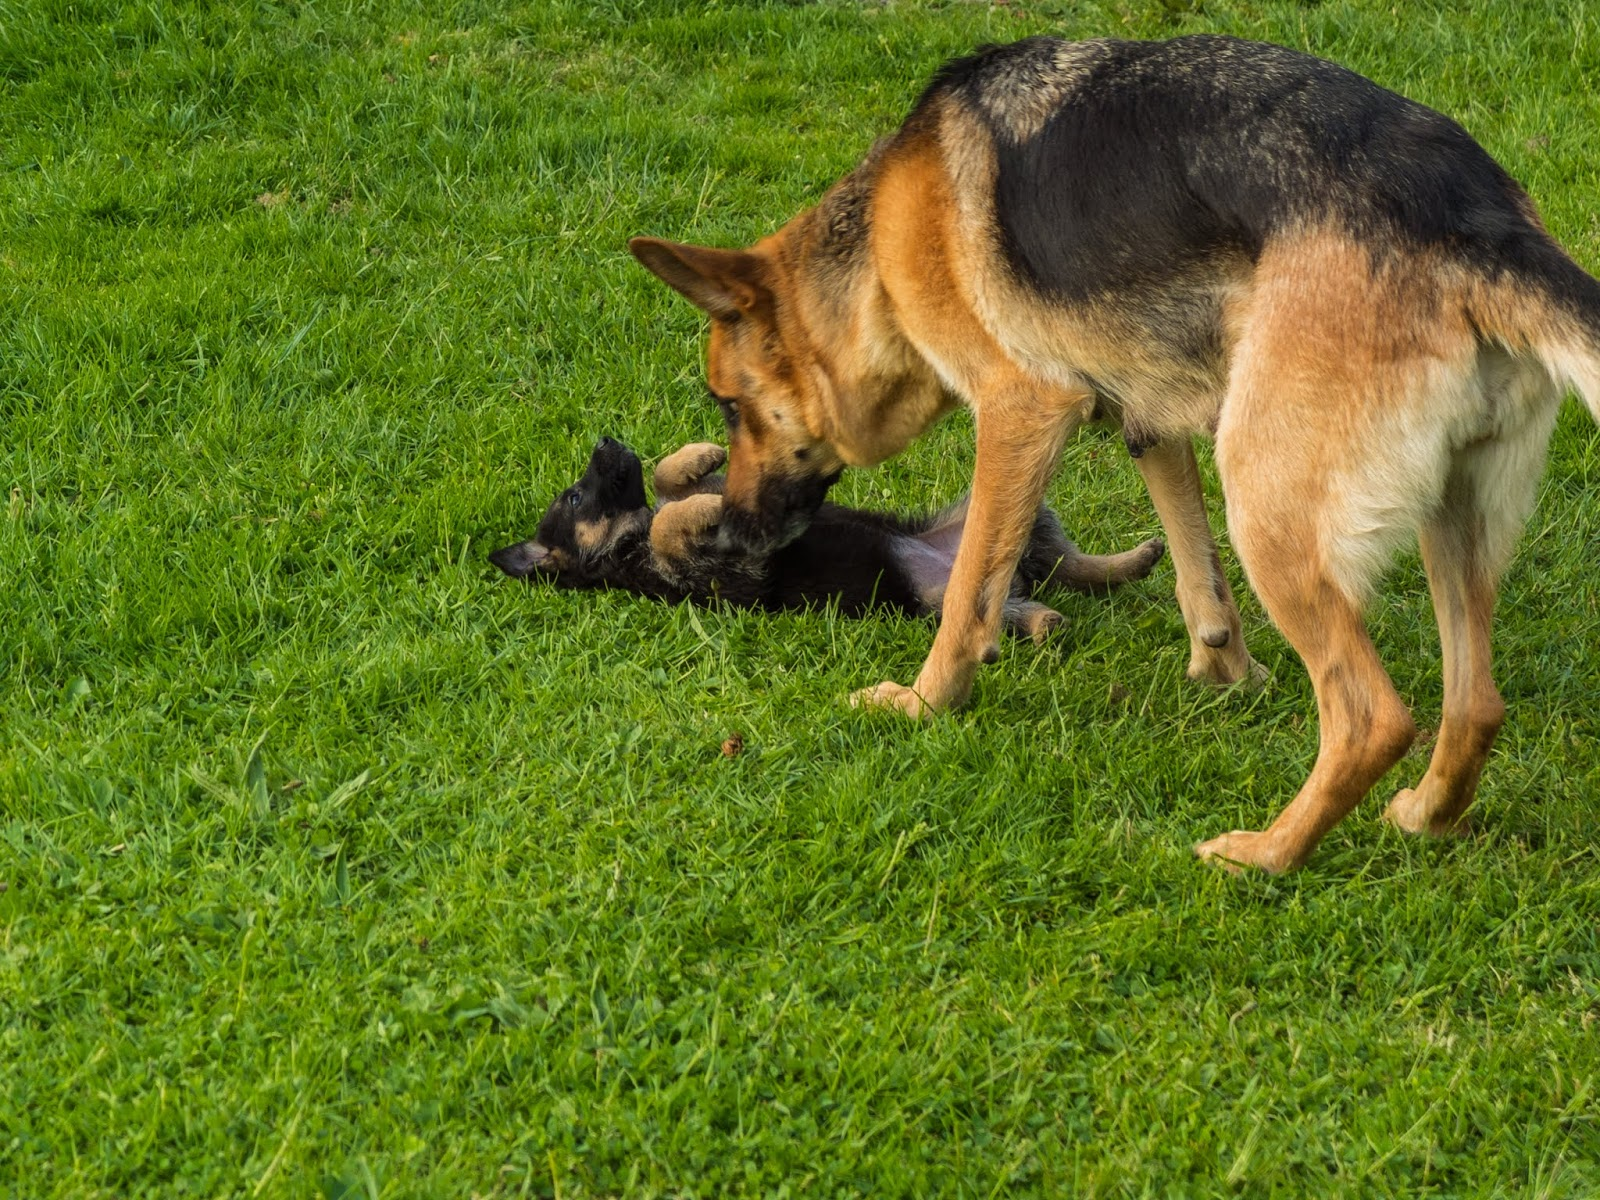 A German Shepherd mom inspecting her puppy on the grass.